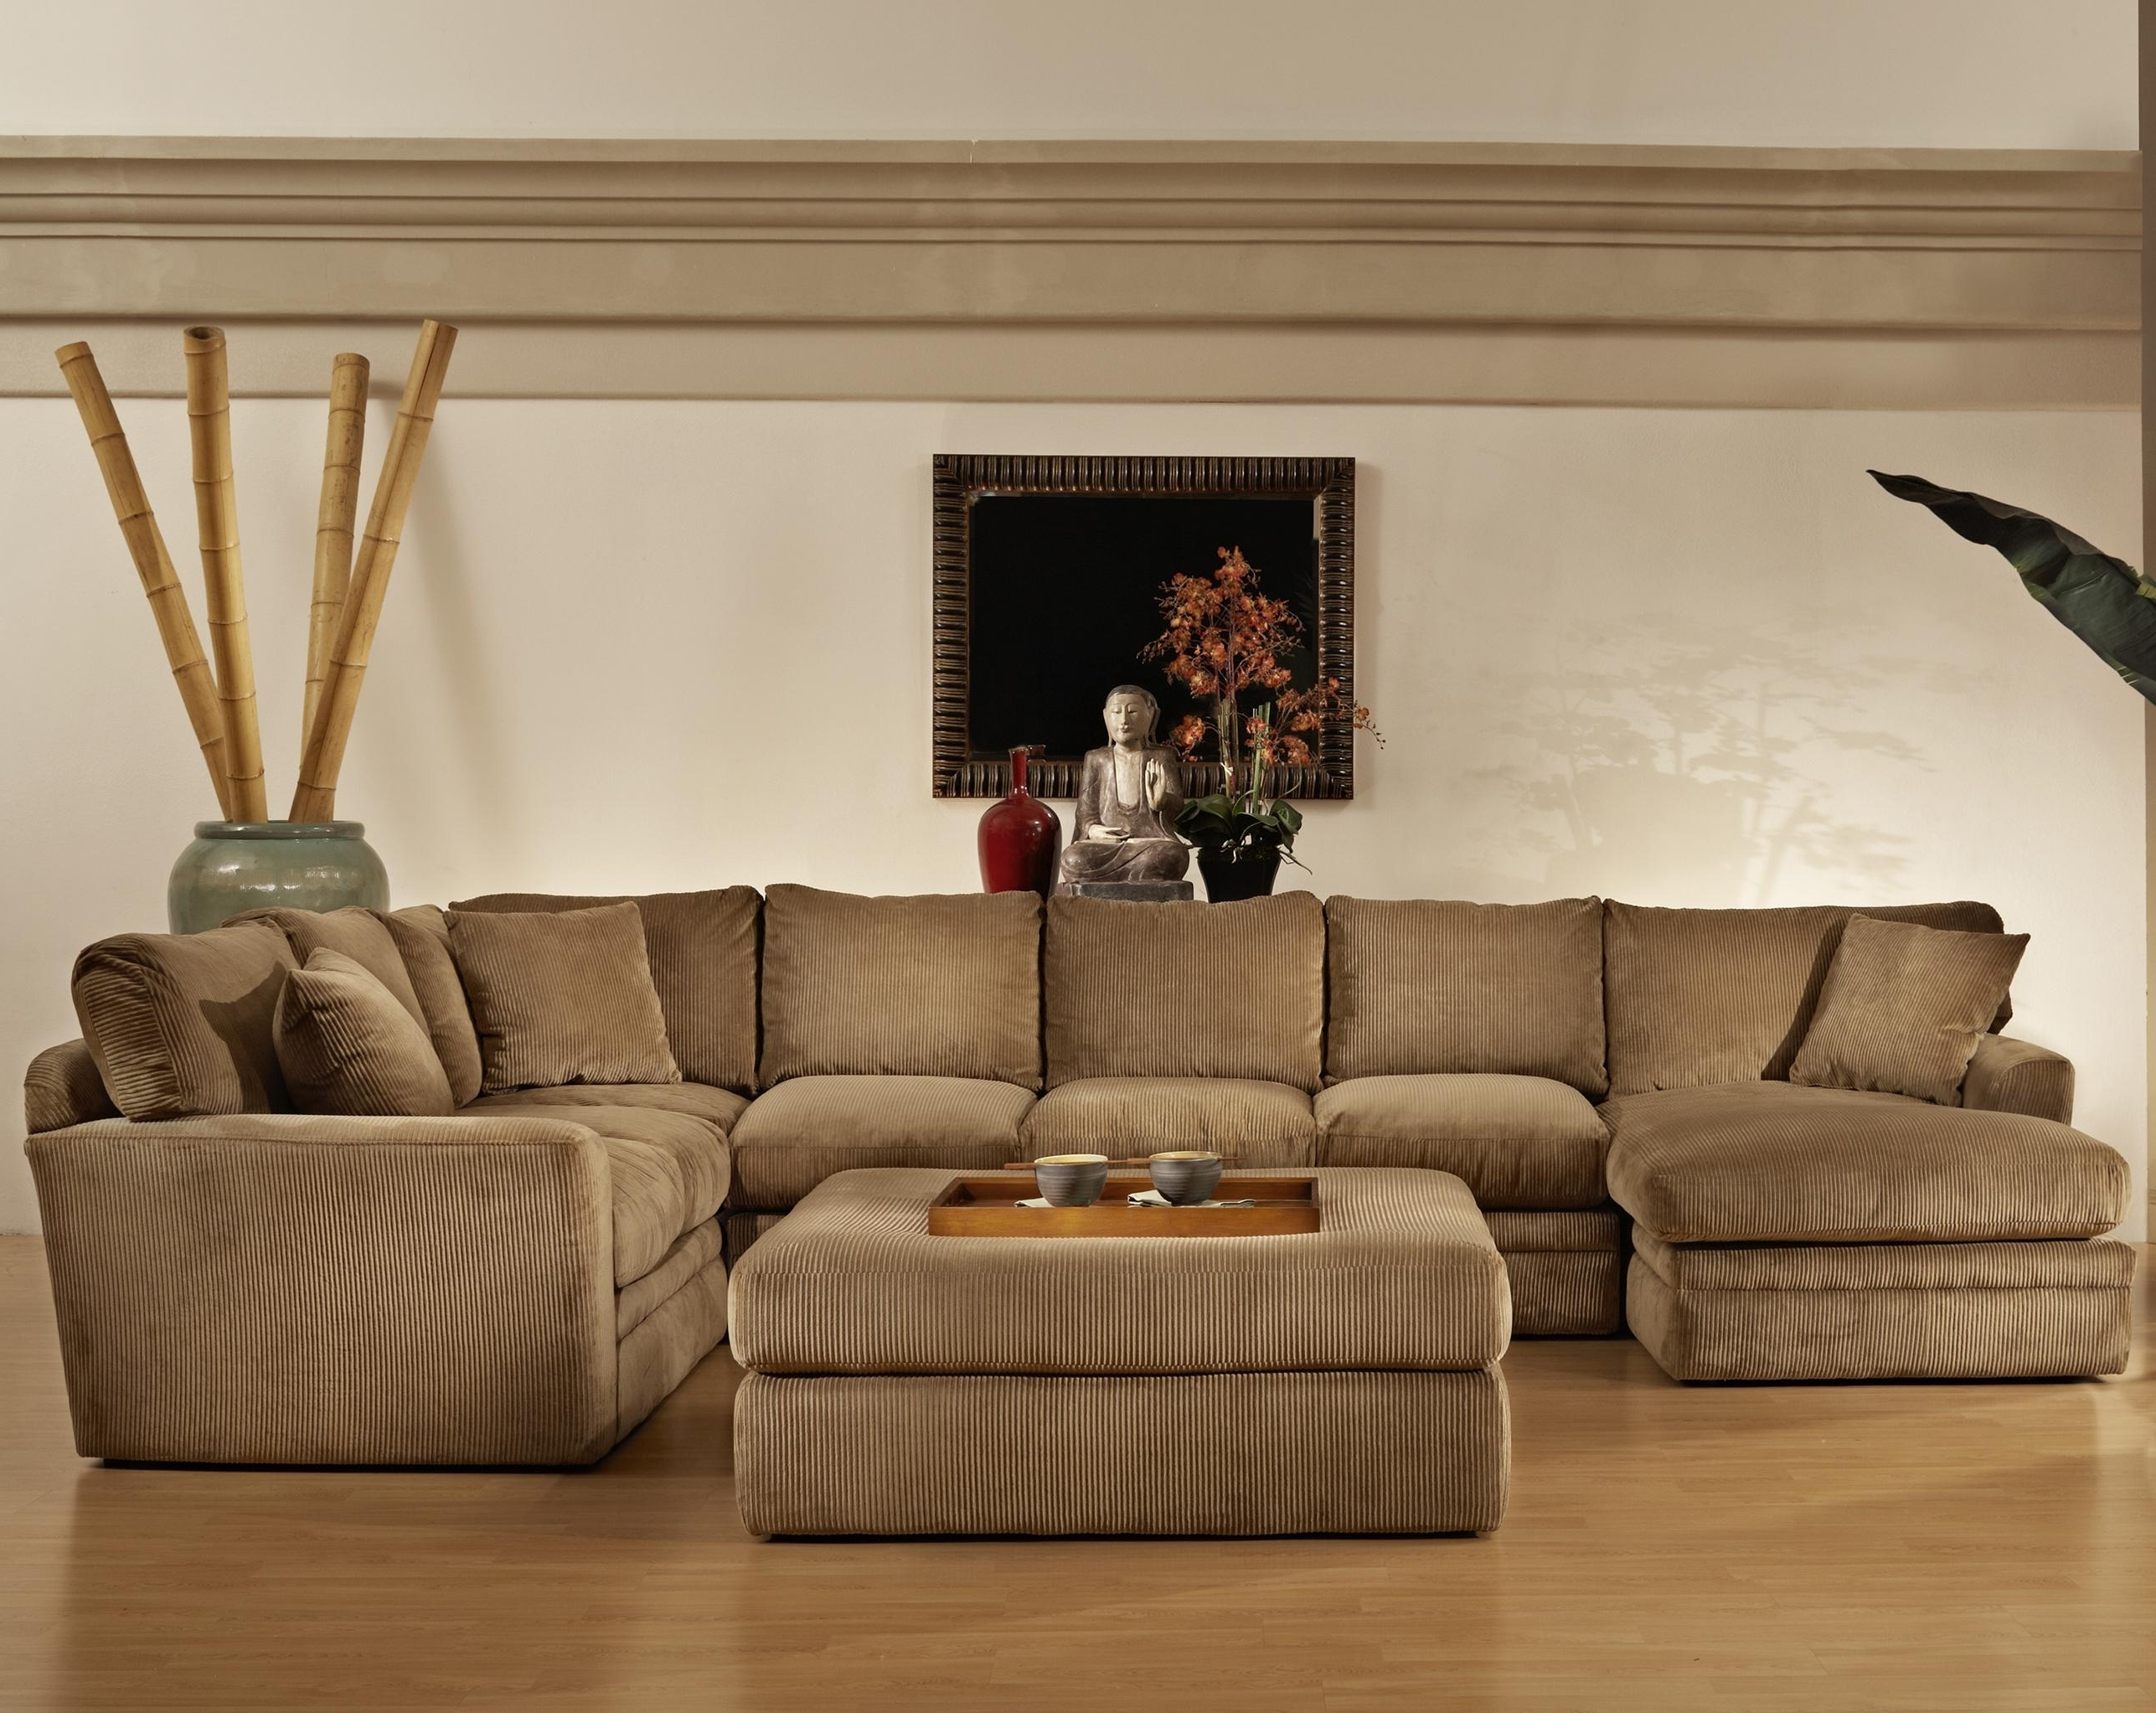 Most Popular Extra Large Sectional Sofa With Chaise And Ottoman U Shaped In For Sectional Sofas With Chaise And Ottoman (View 7 of 20)